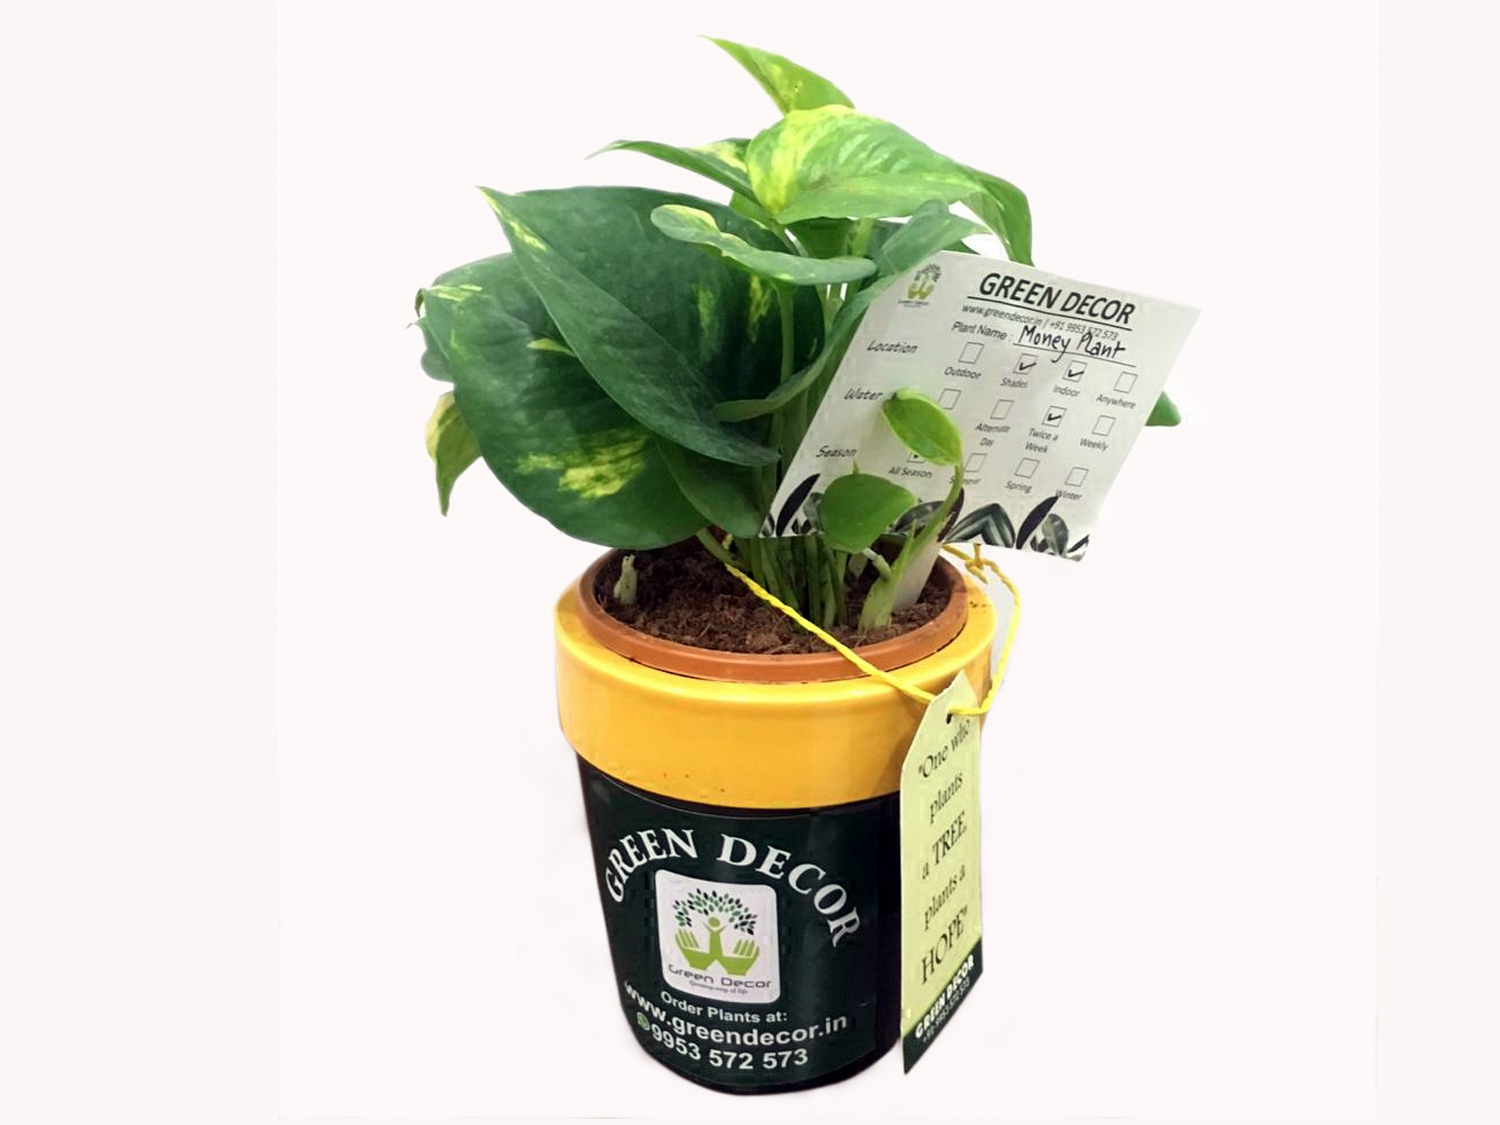 Money Plant with Ceramic Pots by Green Decor